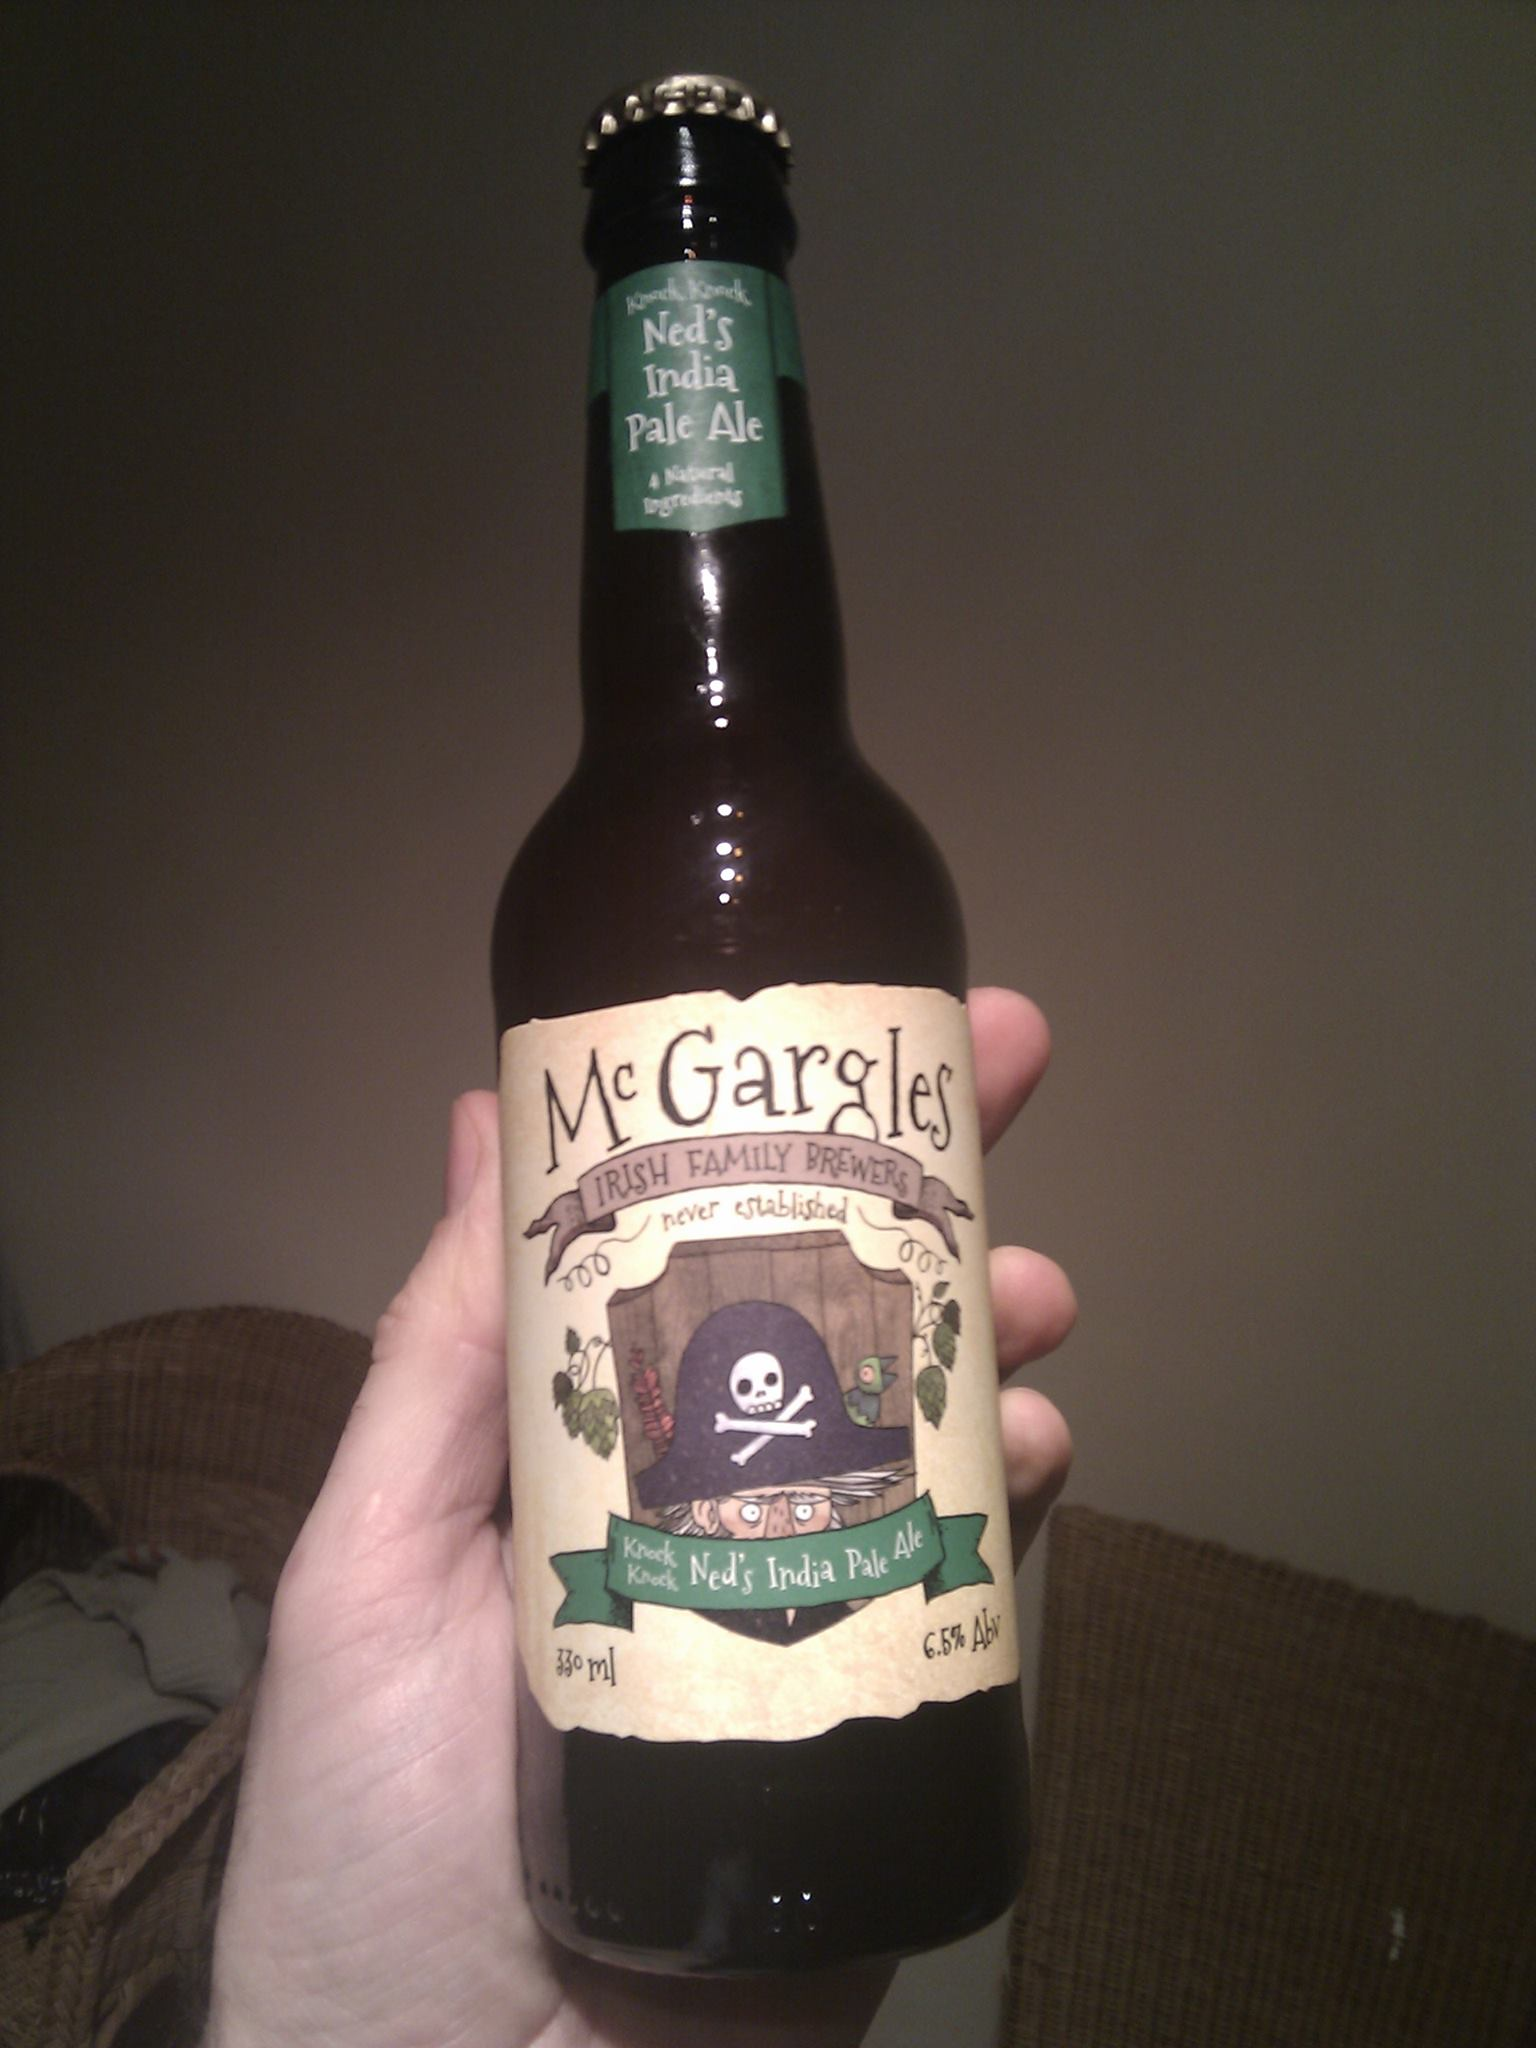 McGargles Knock Knock Ned's India Pale Ale